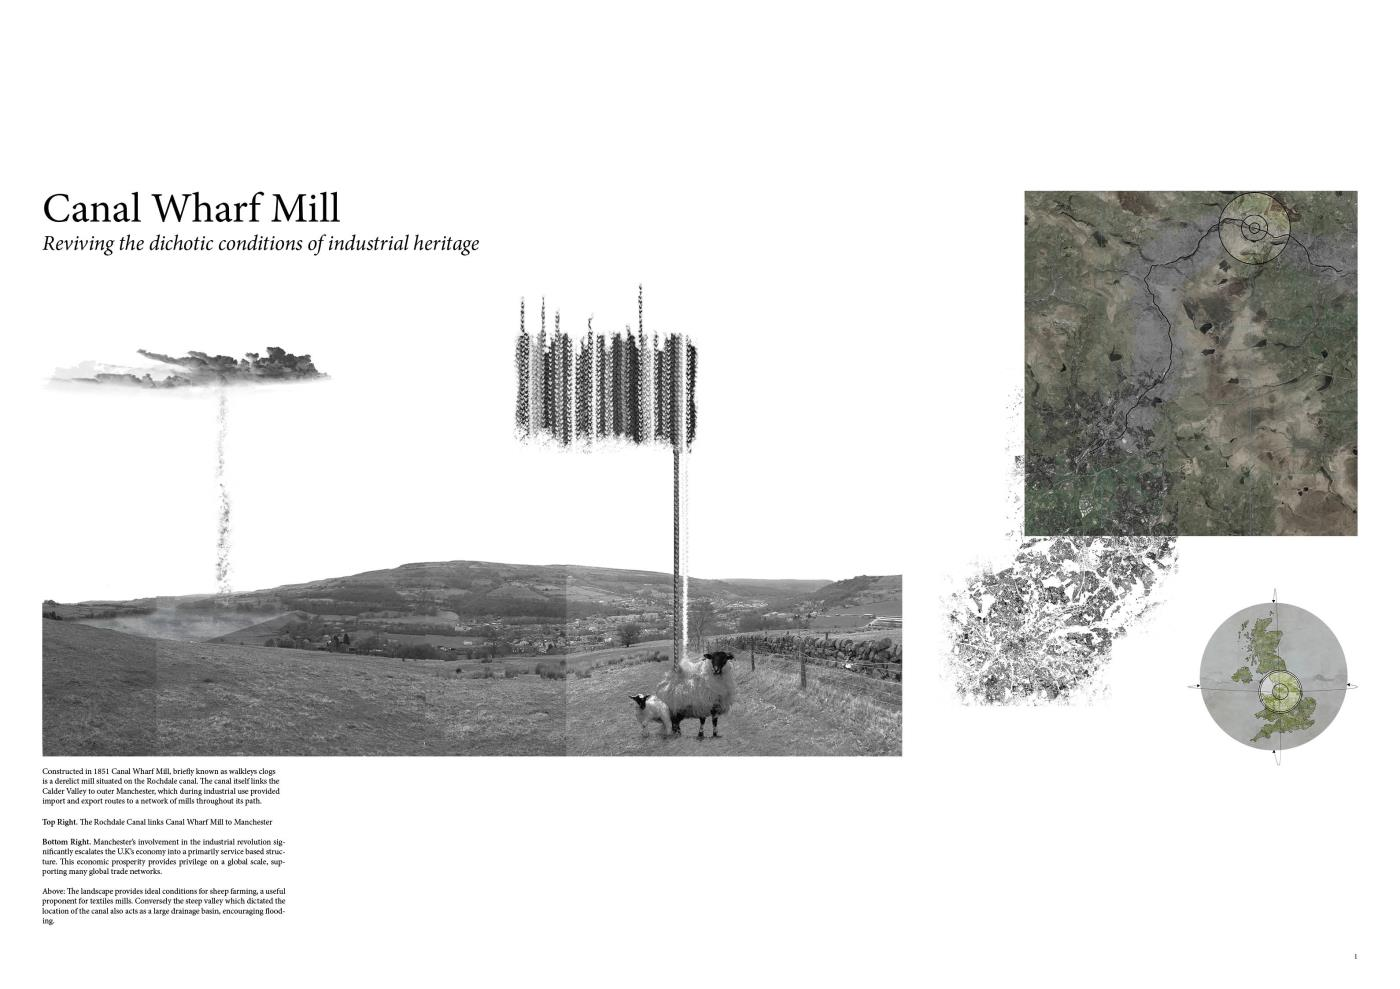 Canal Wharf Mill: Re-activating the Dichotic Conditions of Industrial Heritage